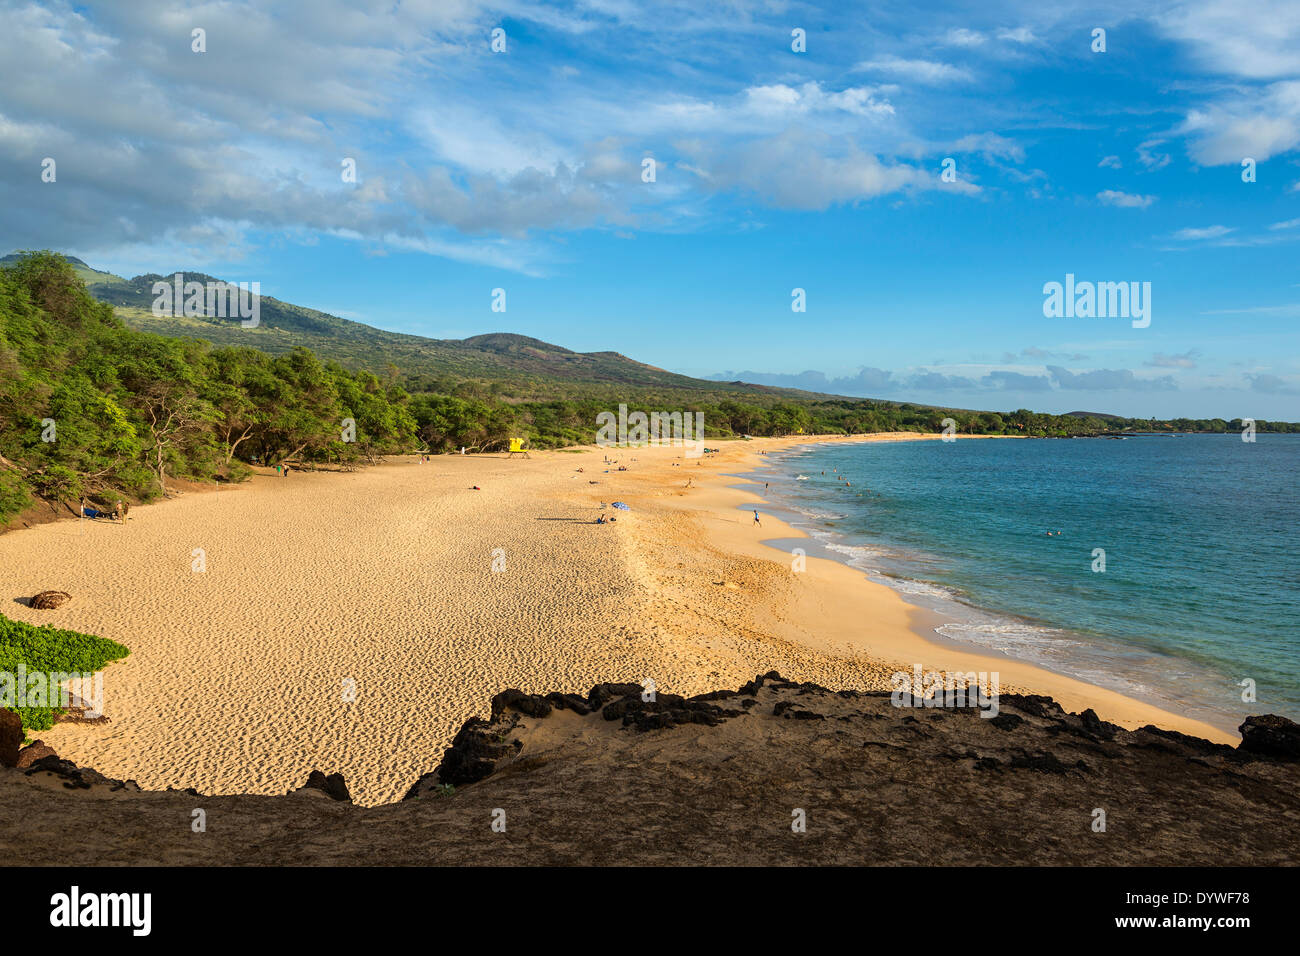 The famous and pristine Big Beach in Maui. - Stock Image